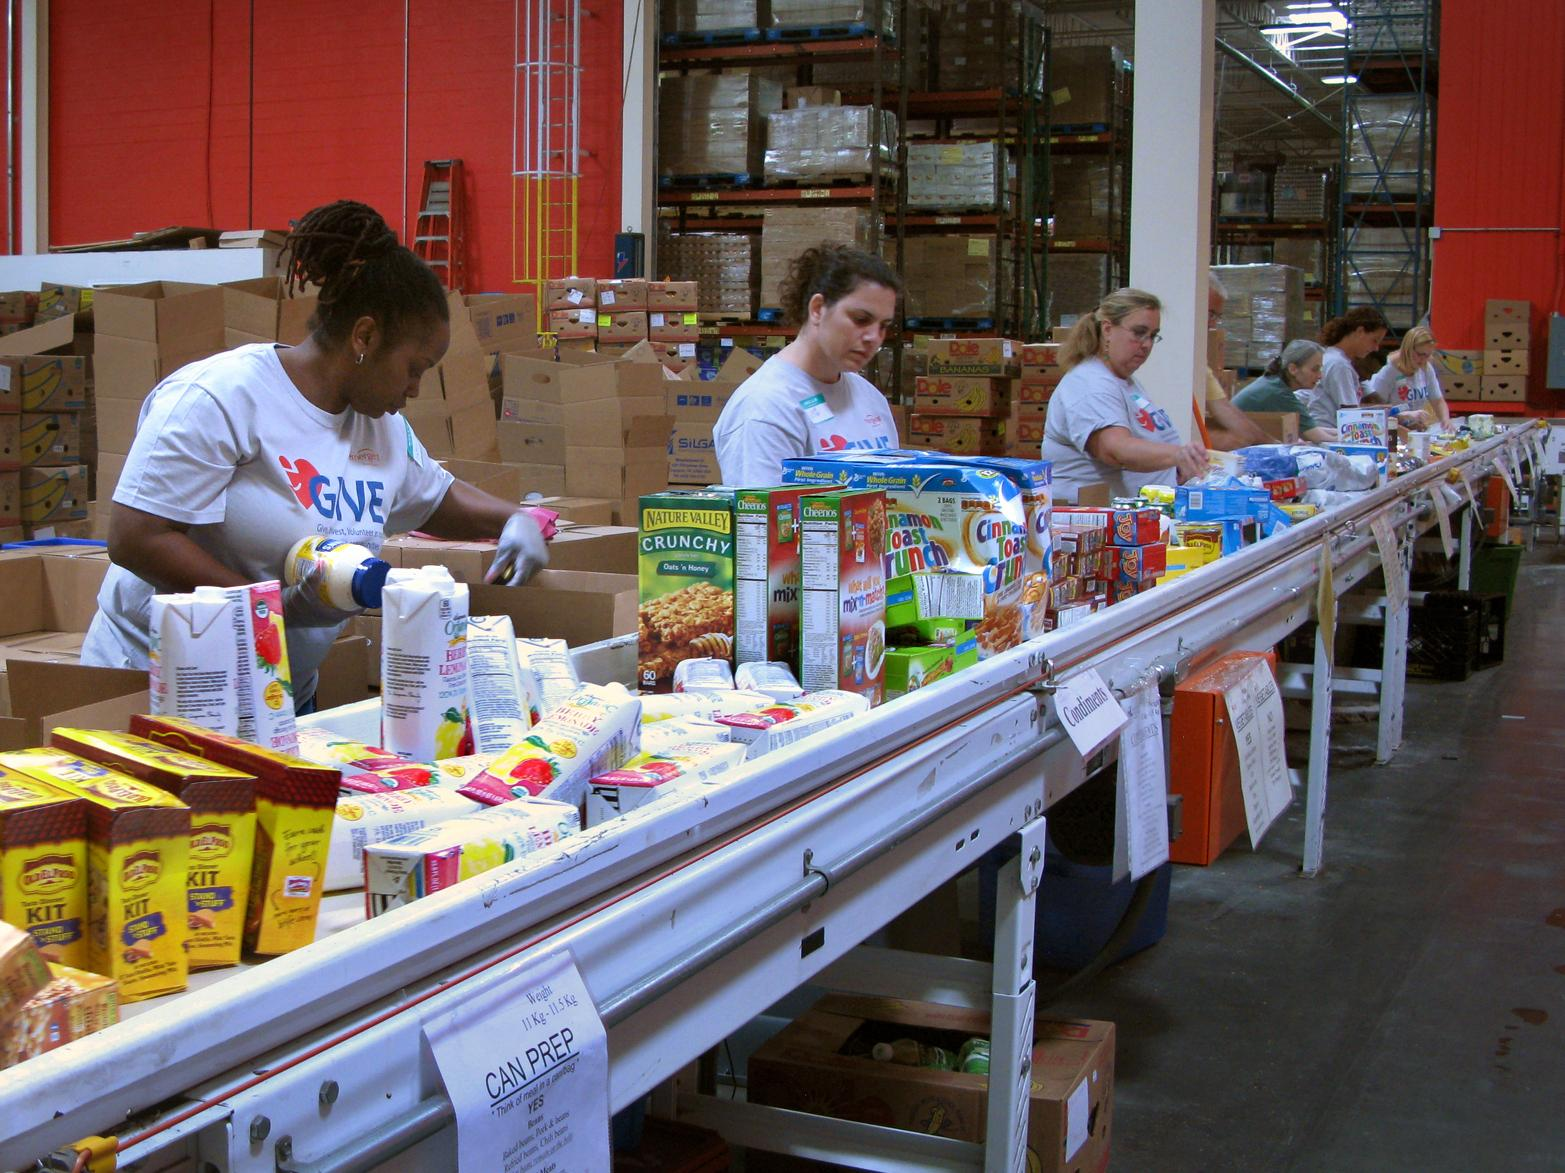 volunteers at the maryland food bank in baltimore sort and box food